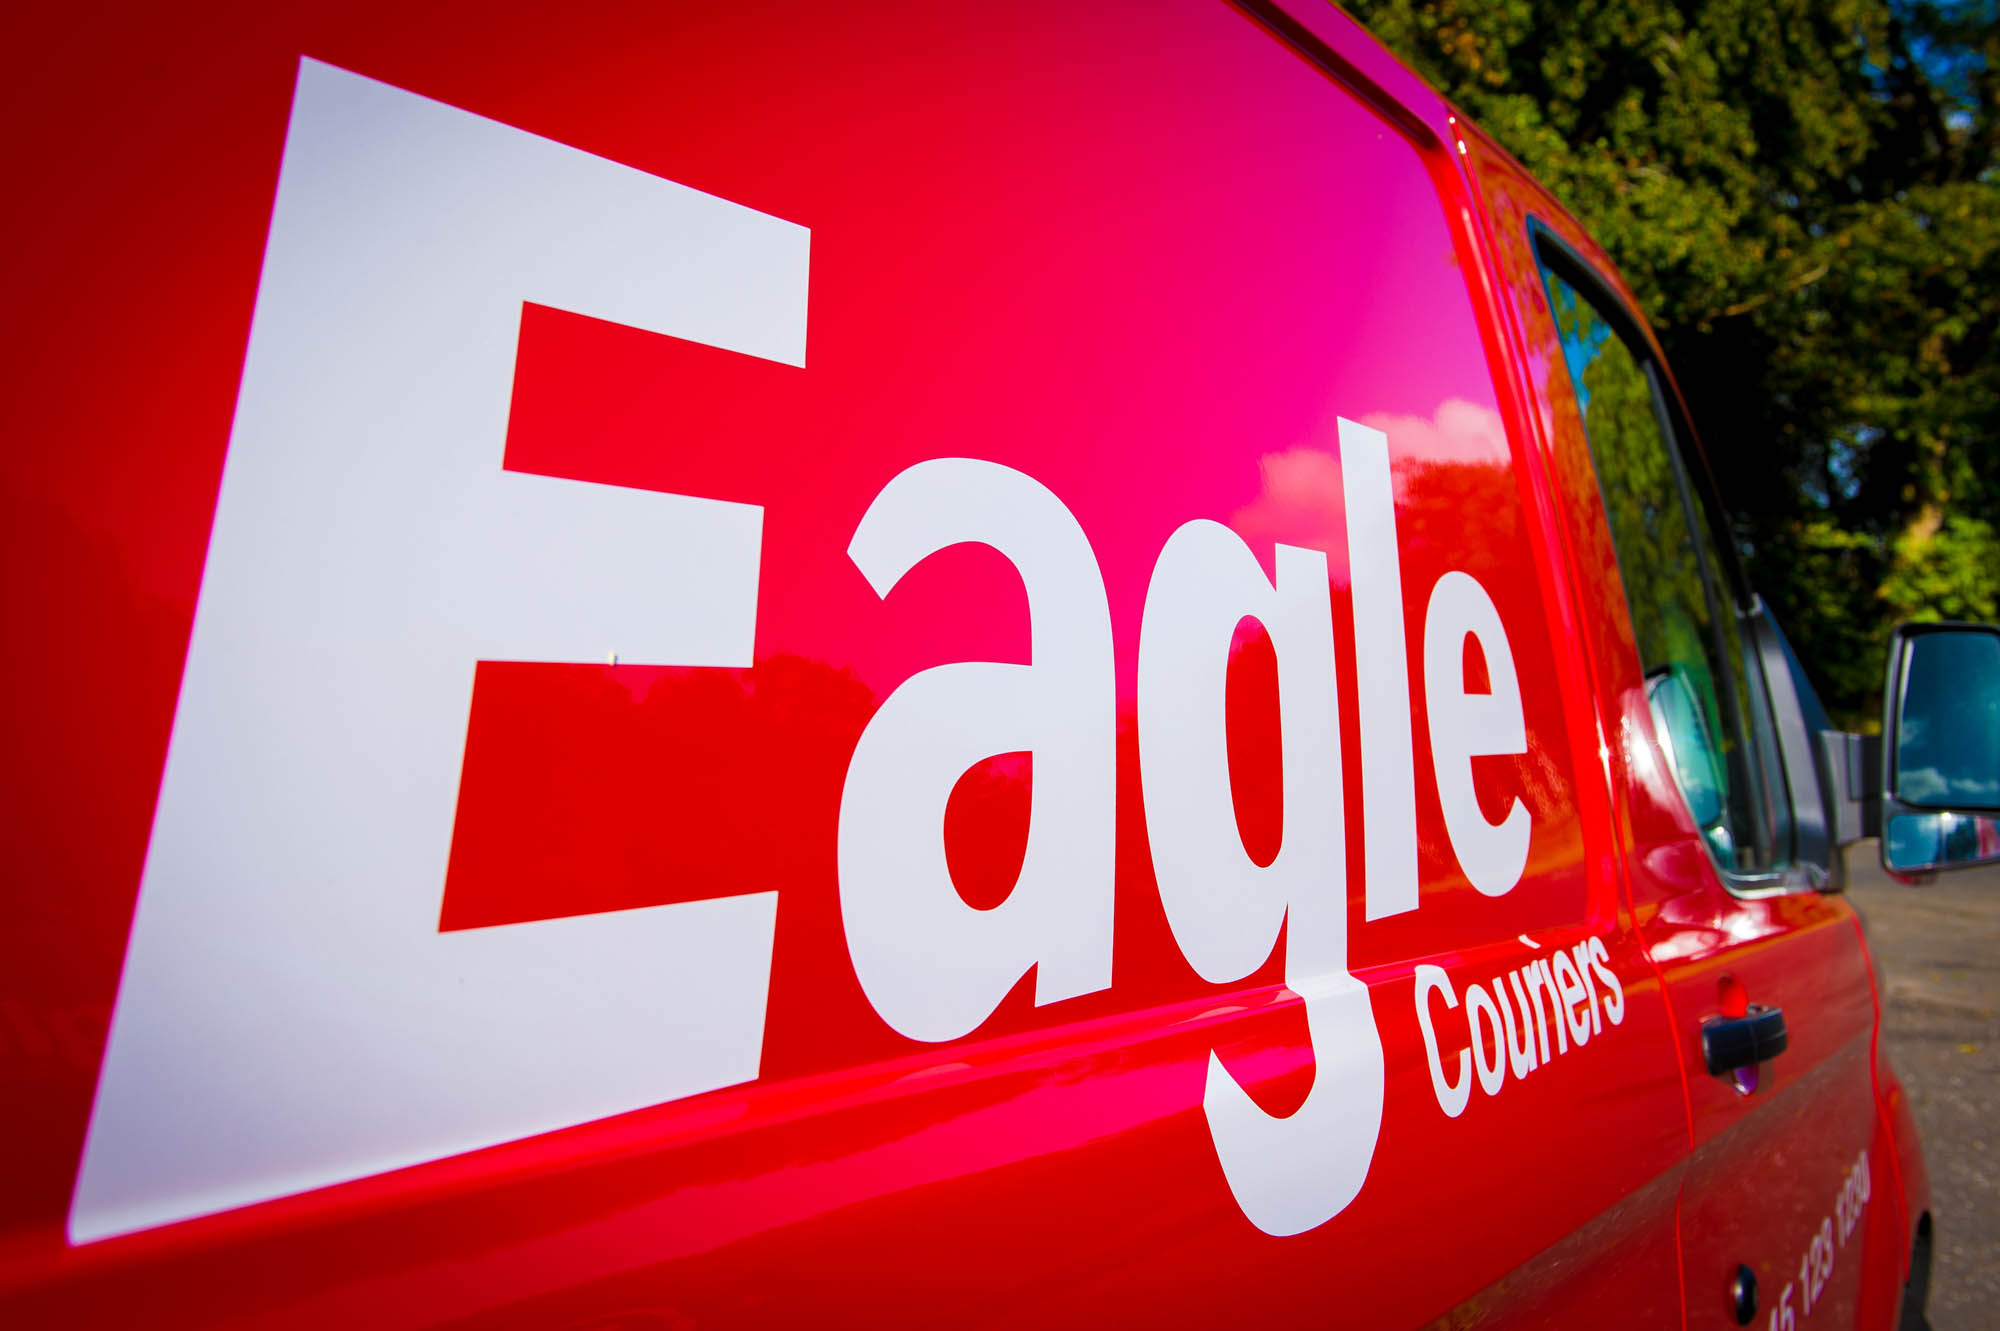 Eagle Couriers in Glasgow, Scotland